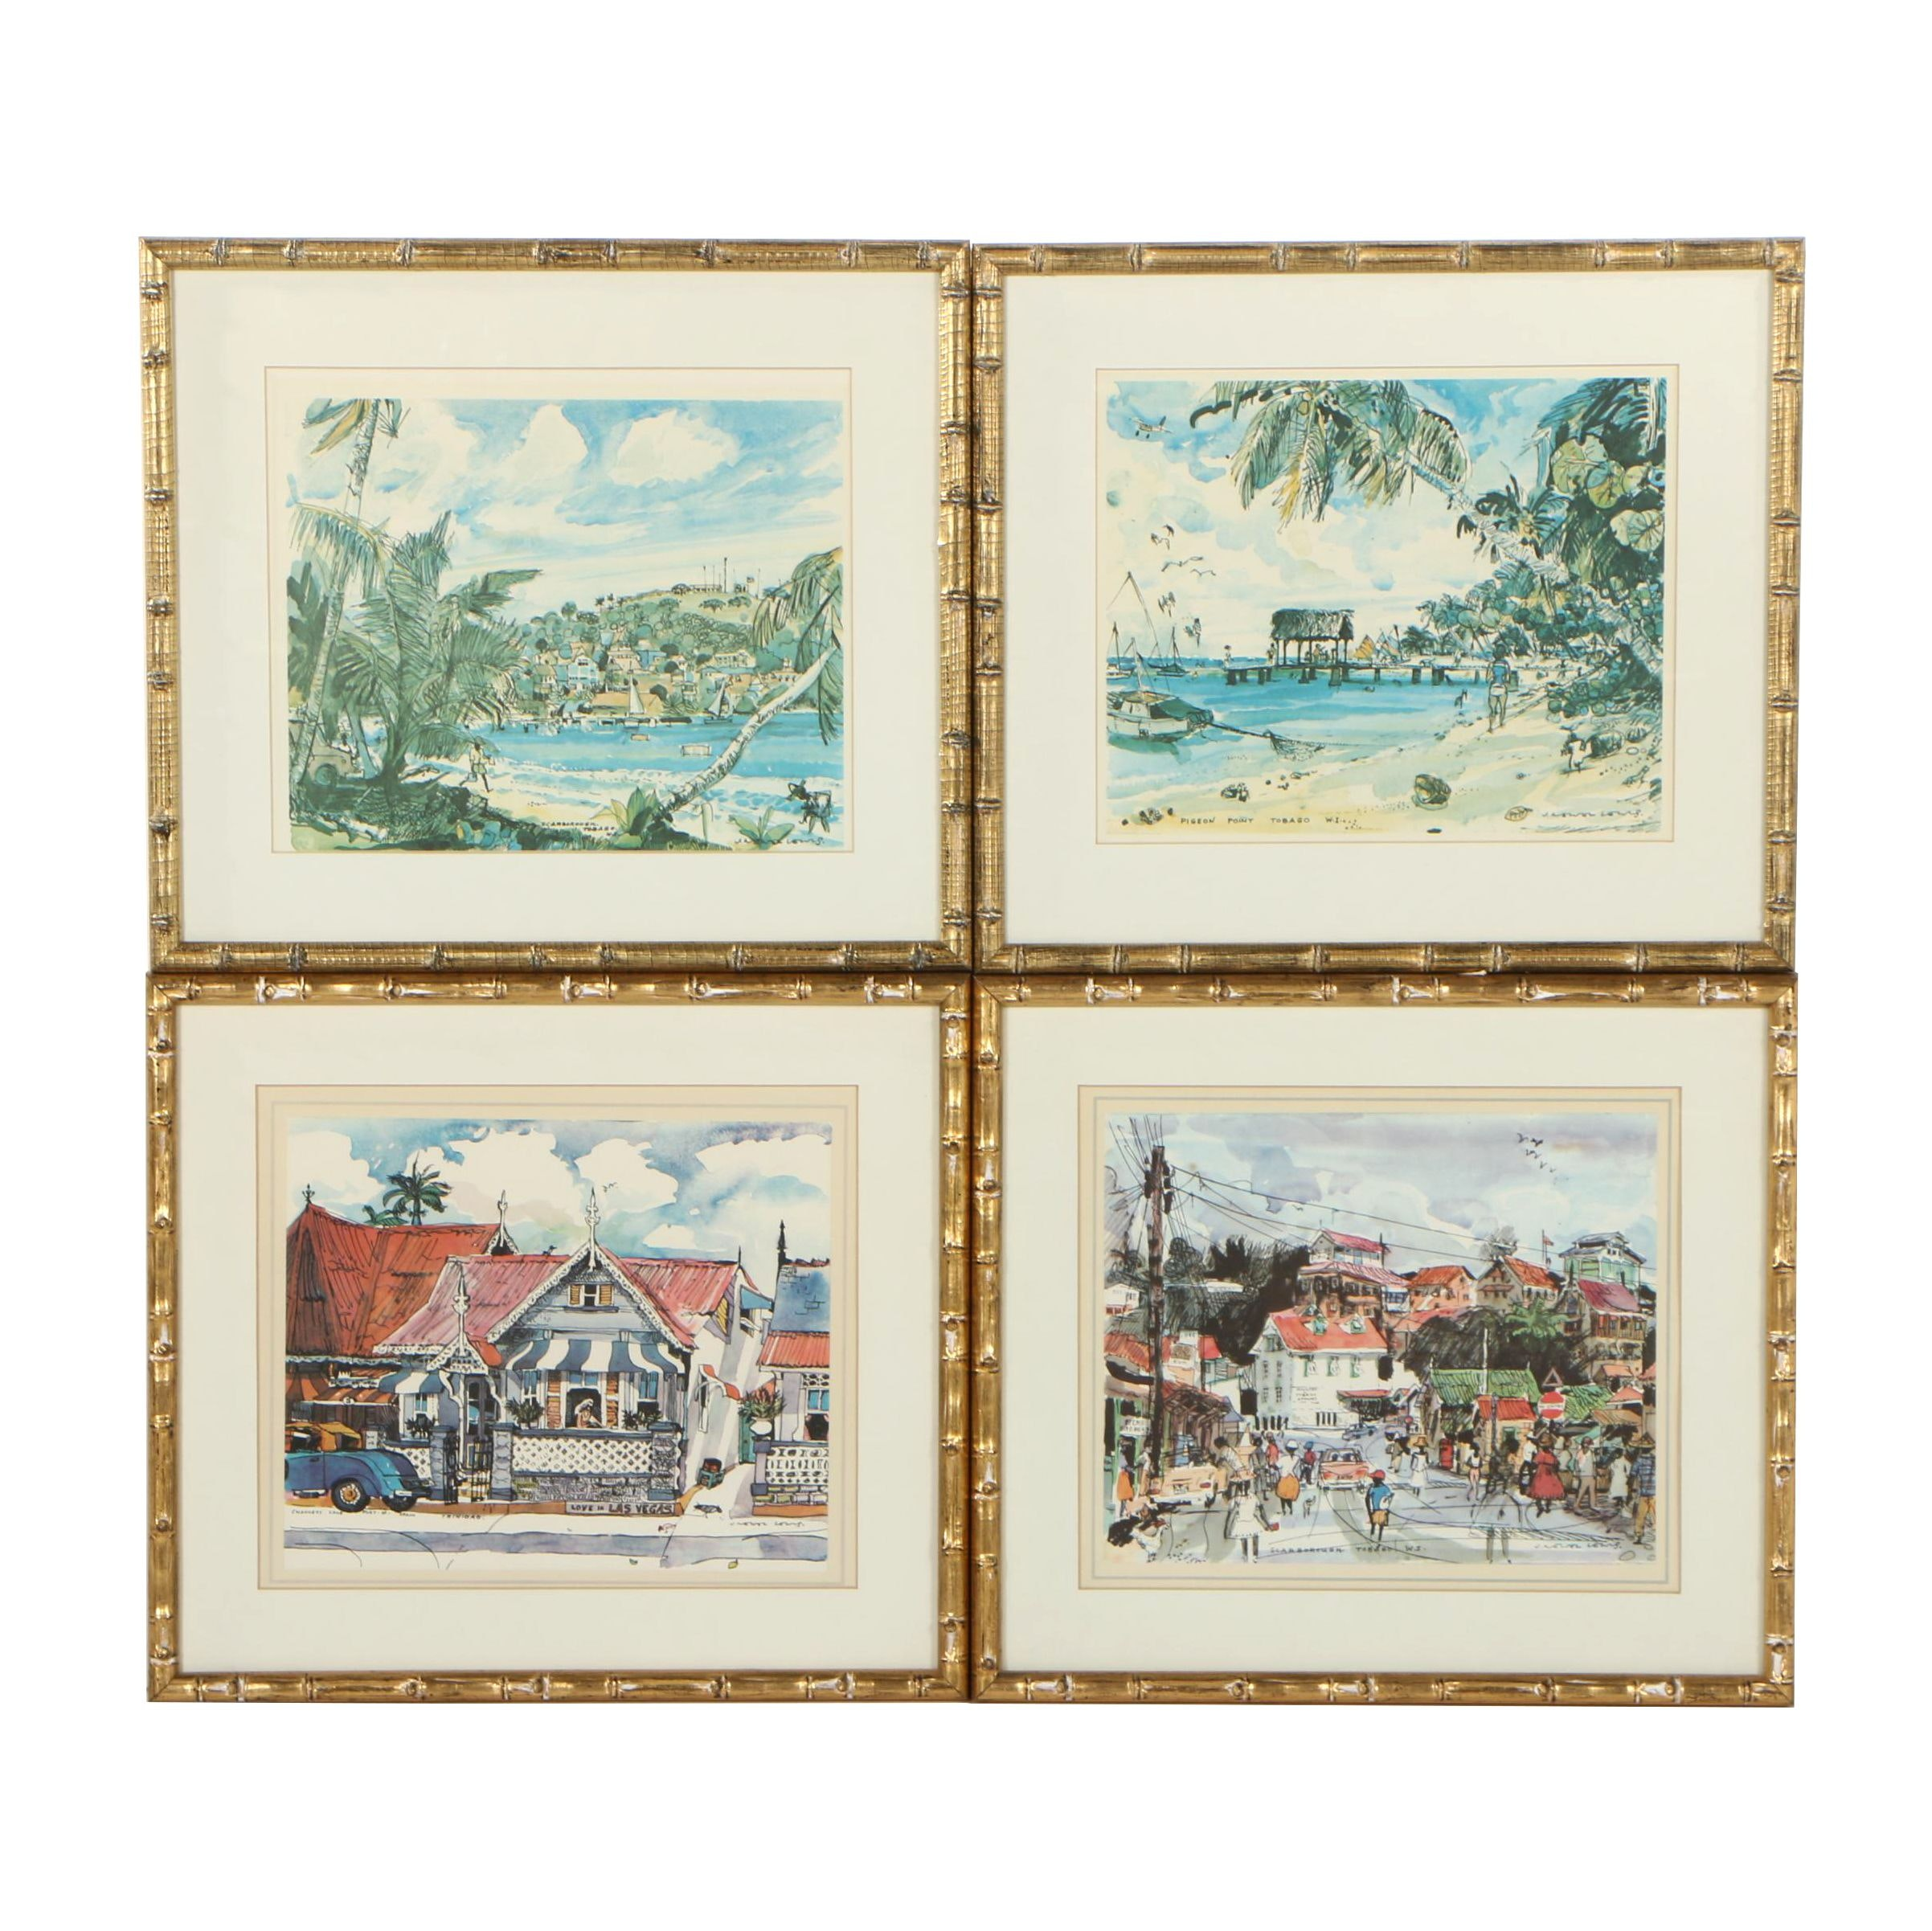 Offset Lithographs after John Newel Lewis of Trinidad and Tobago